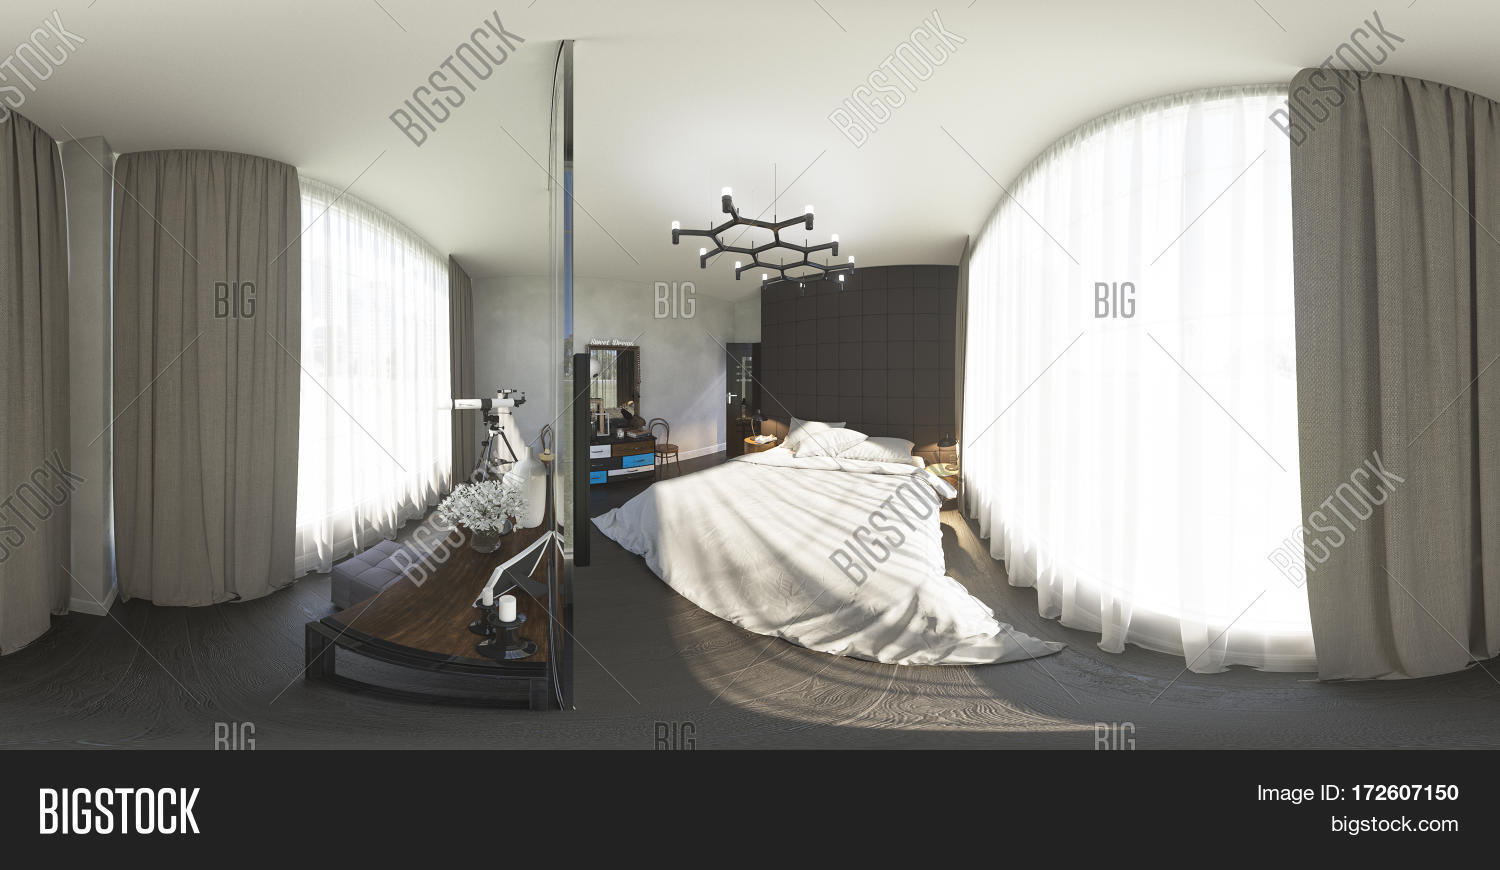 3d Illustration Image Photo Free Trial Bigstock